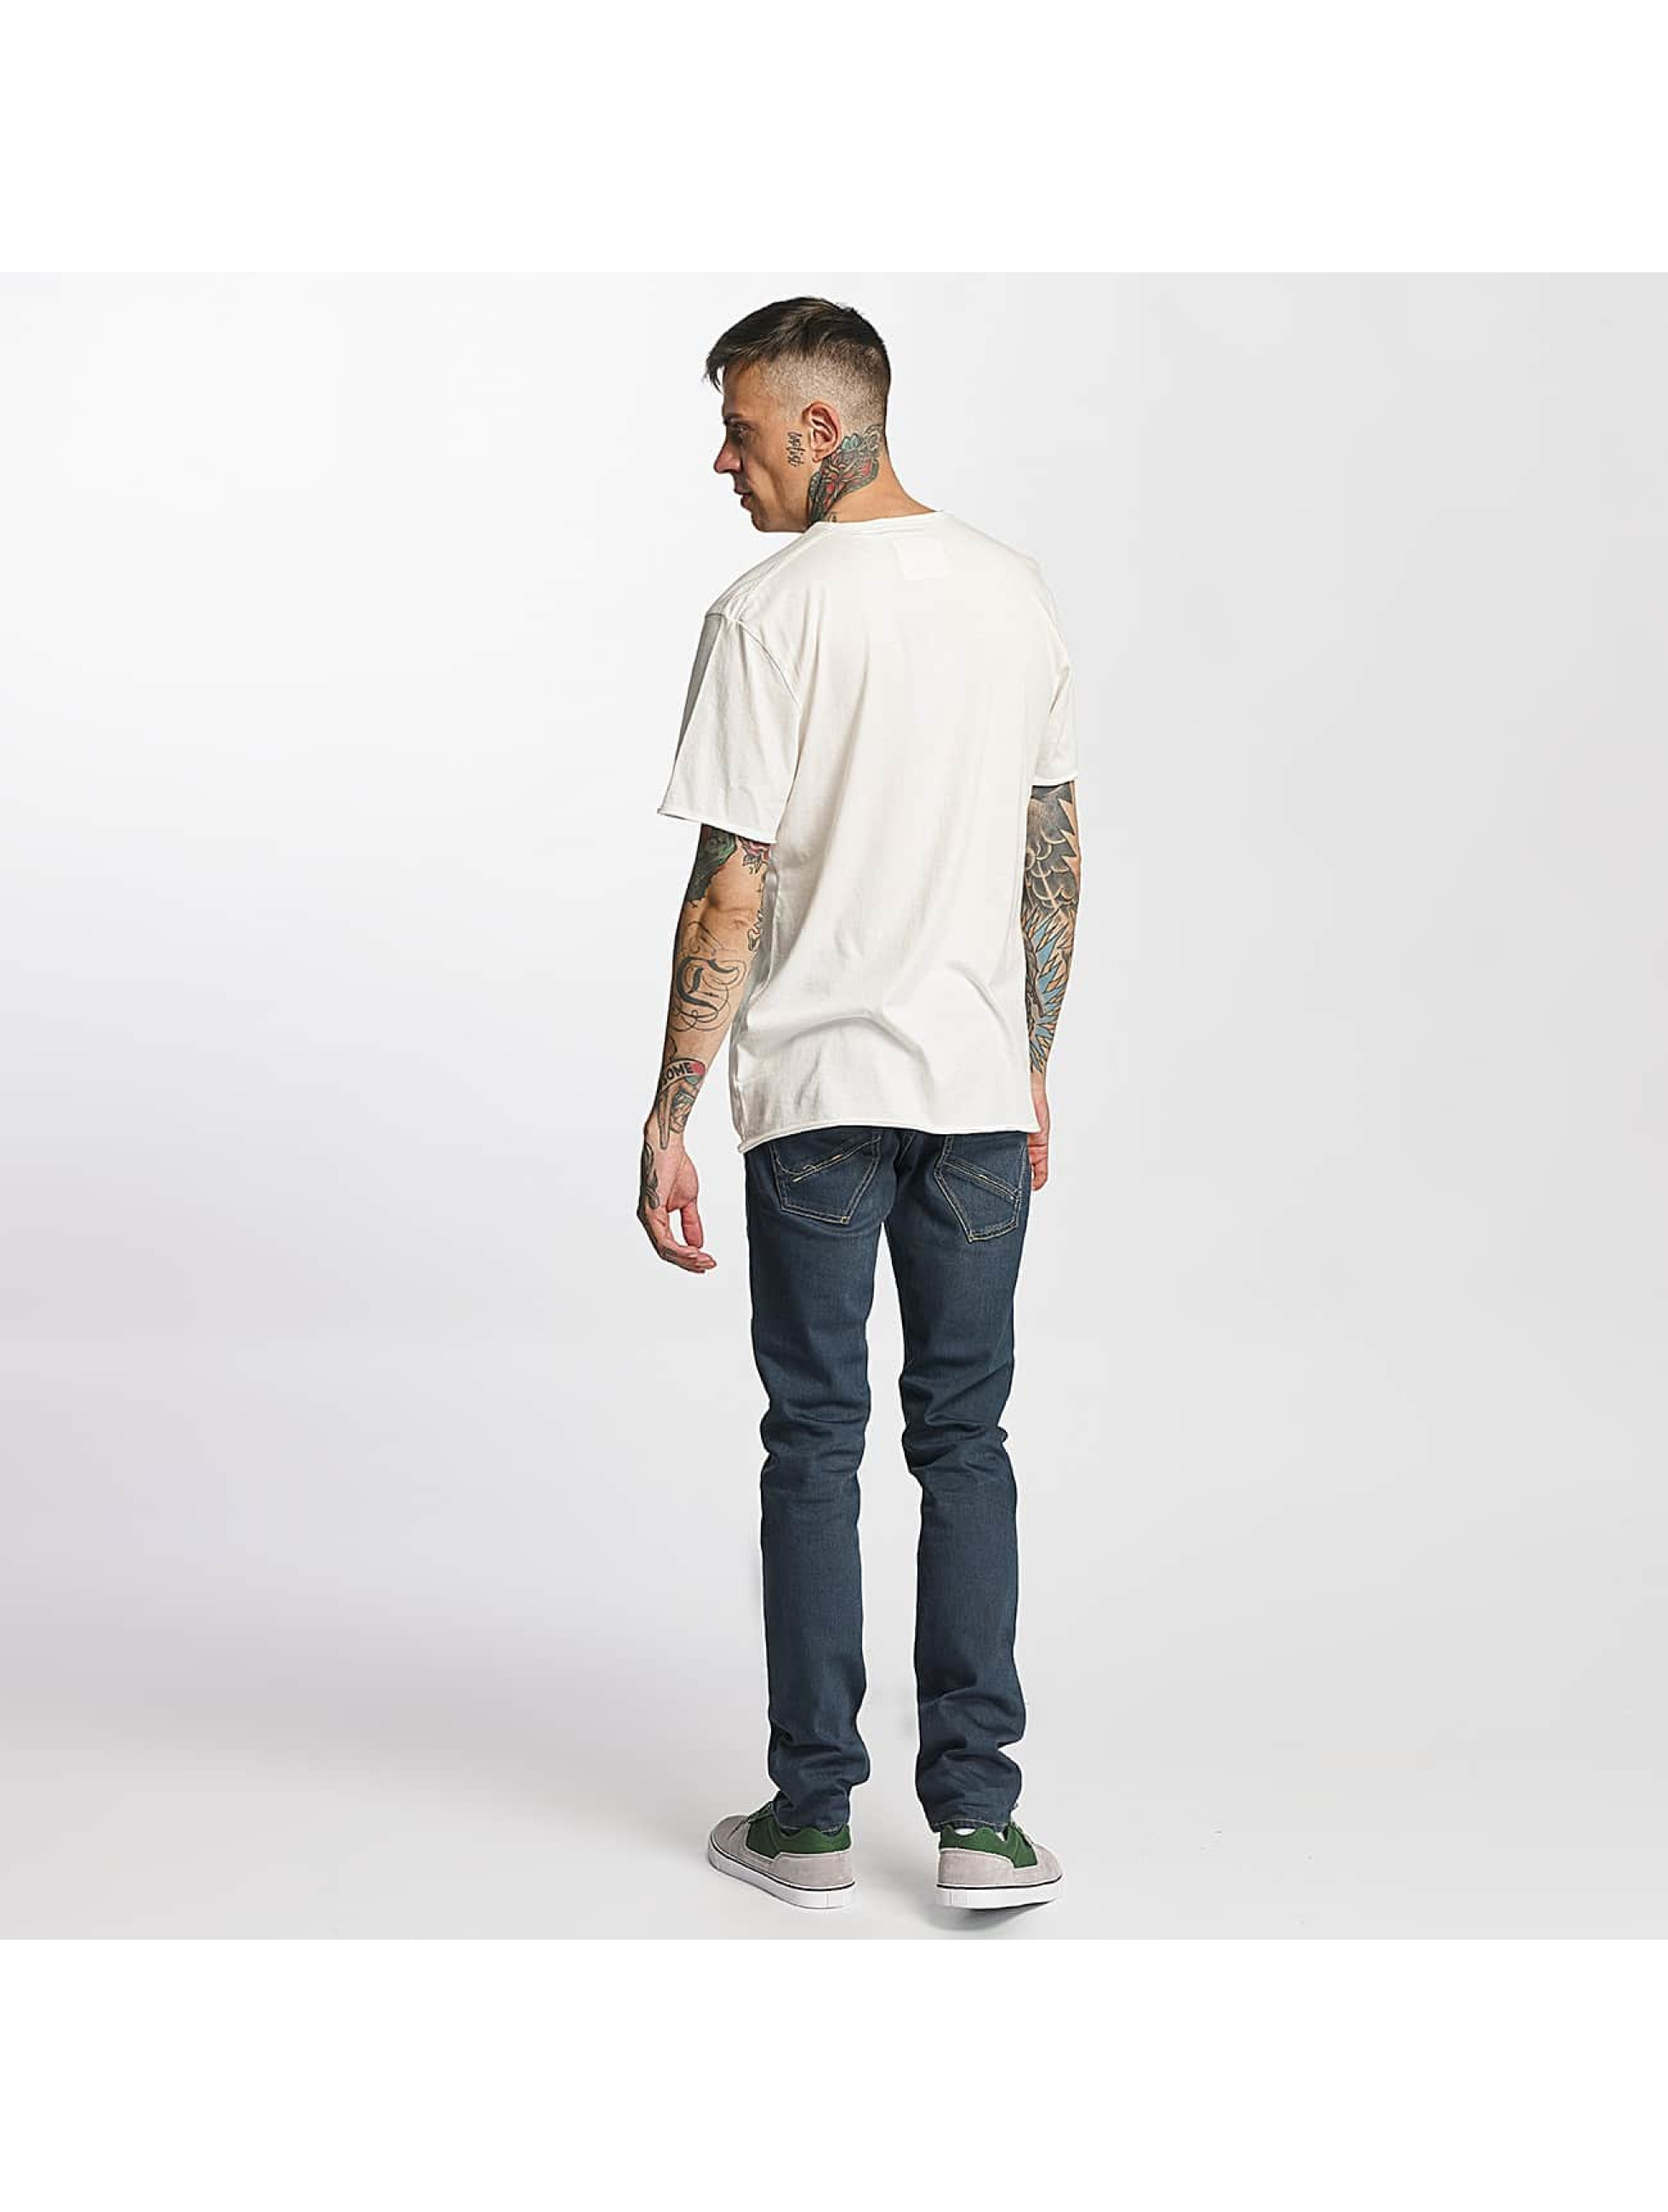 O'NEILL T-Shirt LM The Wolf white